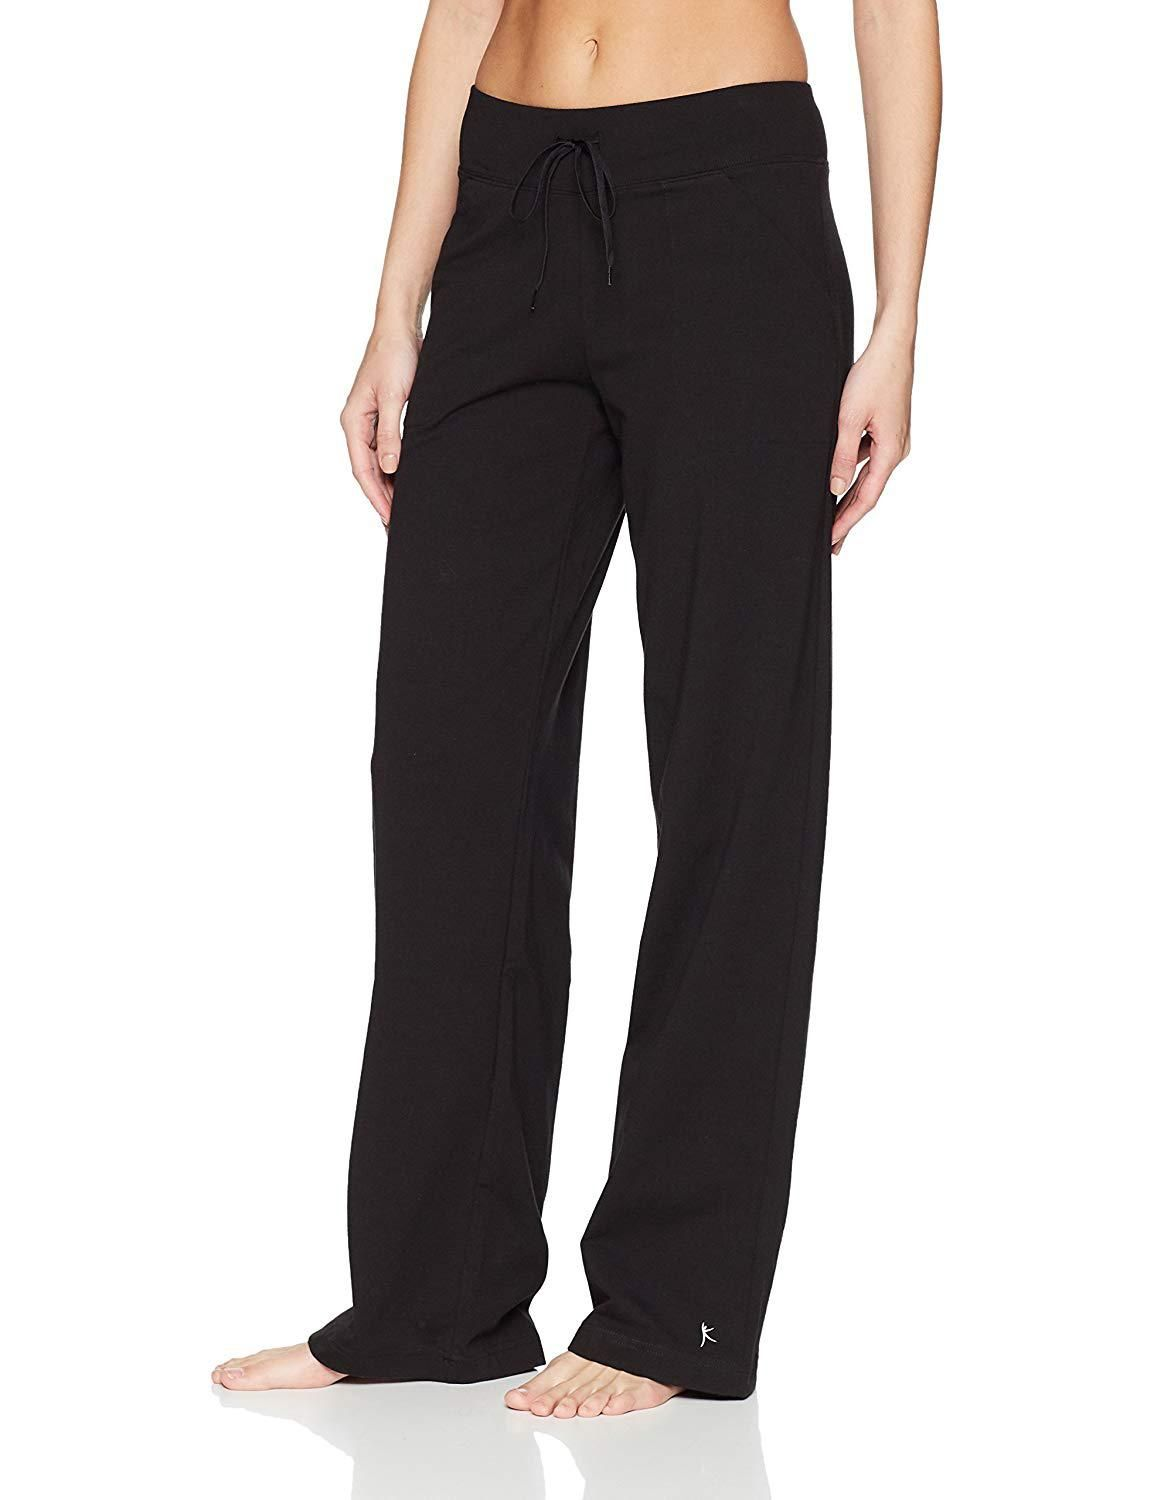 817291e924a4d Danskin Now Womens Dri More Relaxed Pants, Petite Yoga, Fitness ...